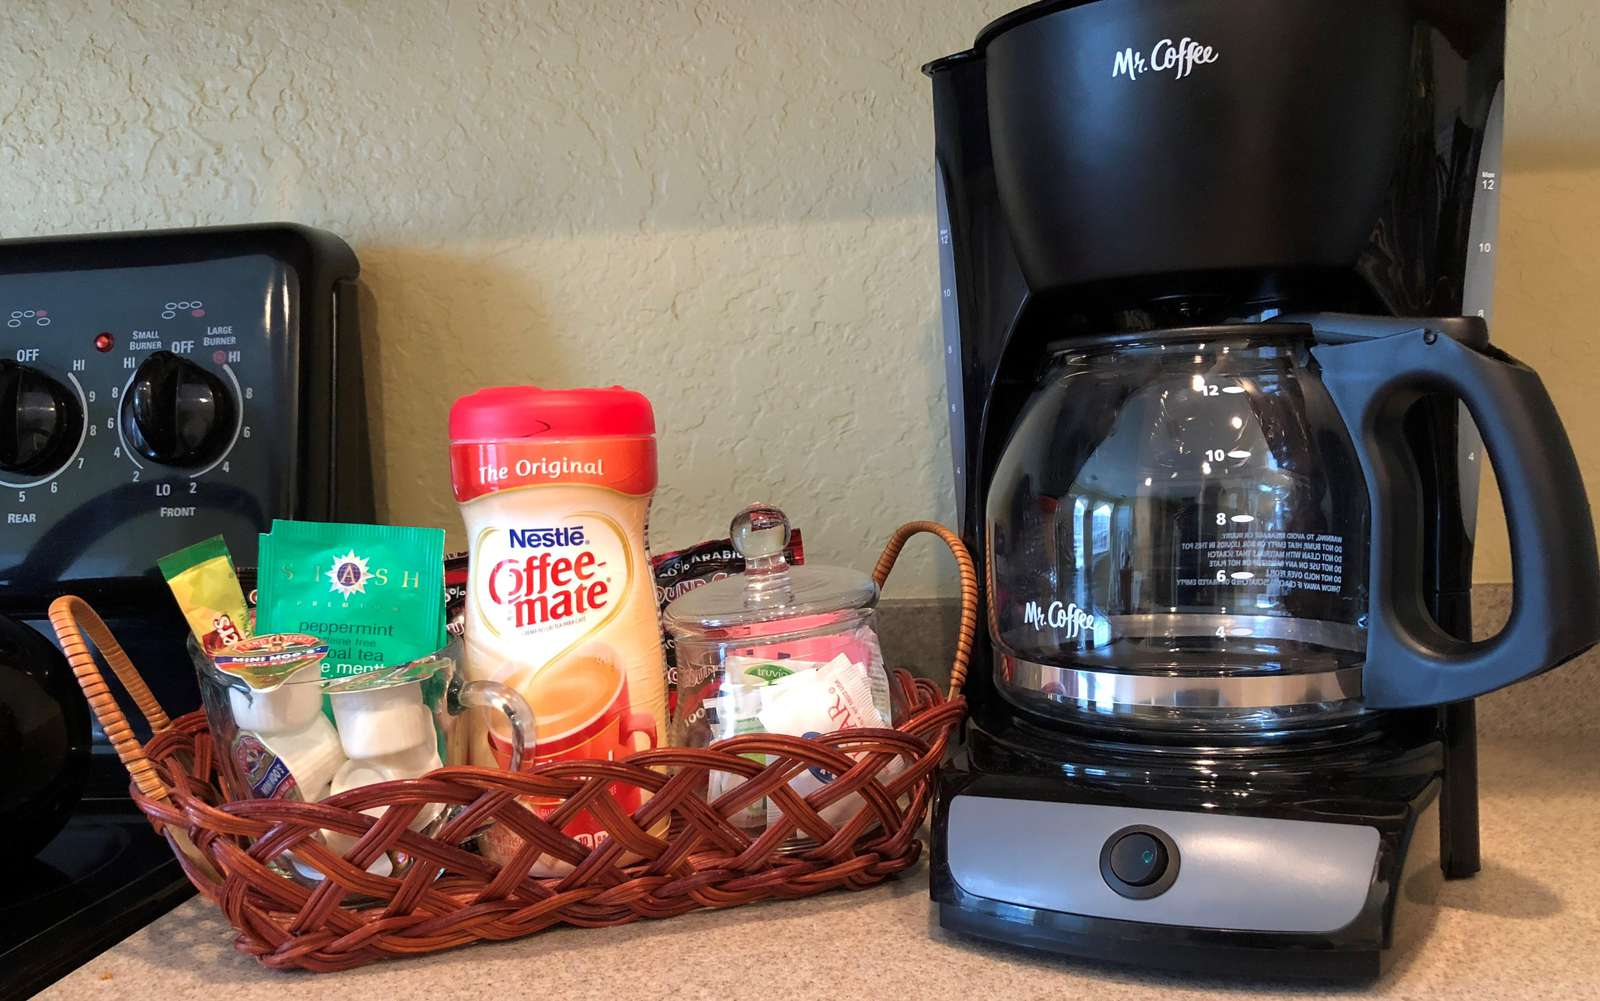 A starter kit with coffee, filters, sugar and creamer